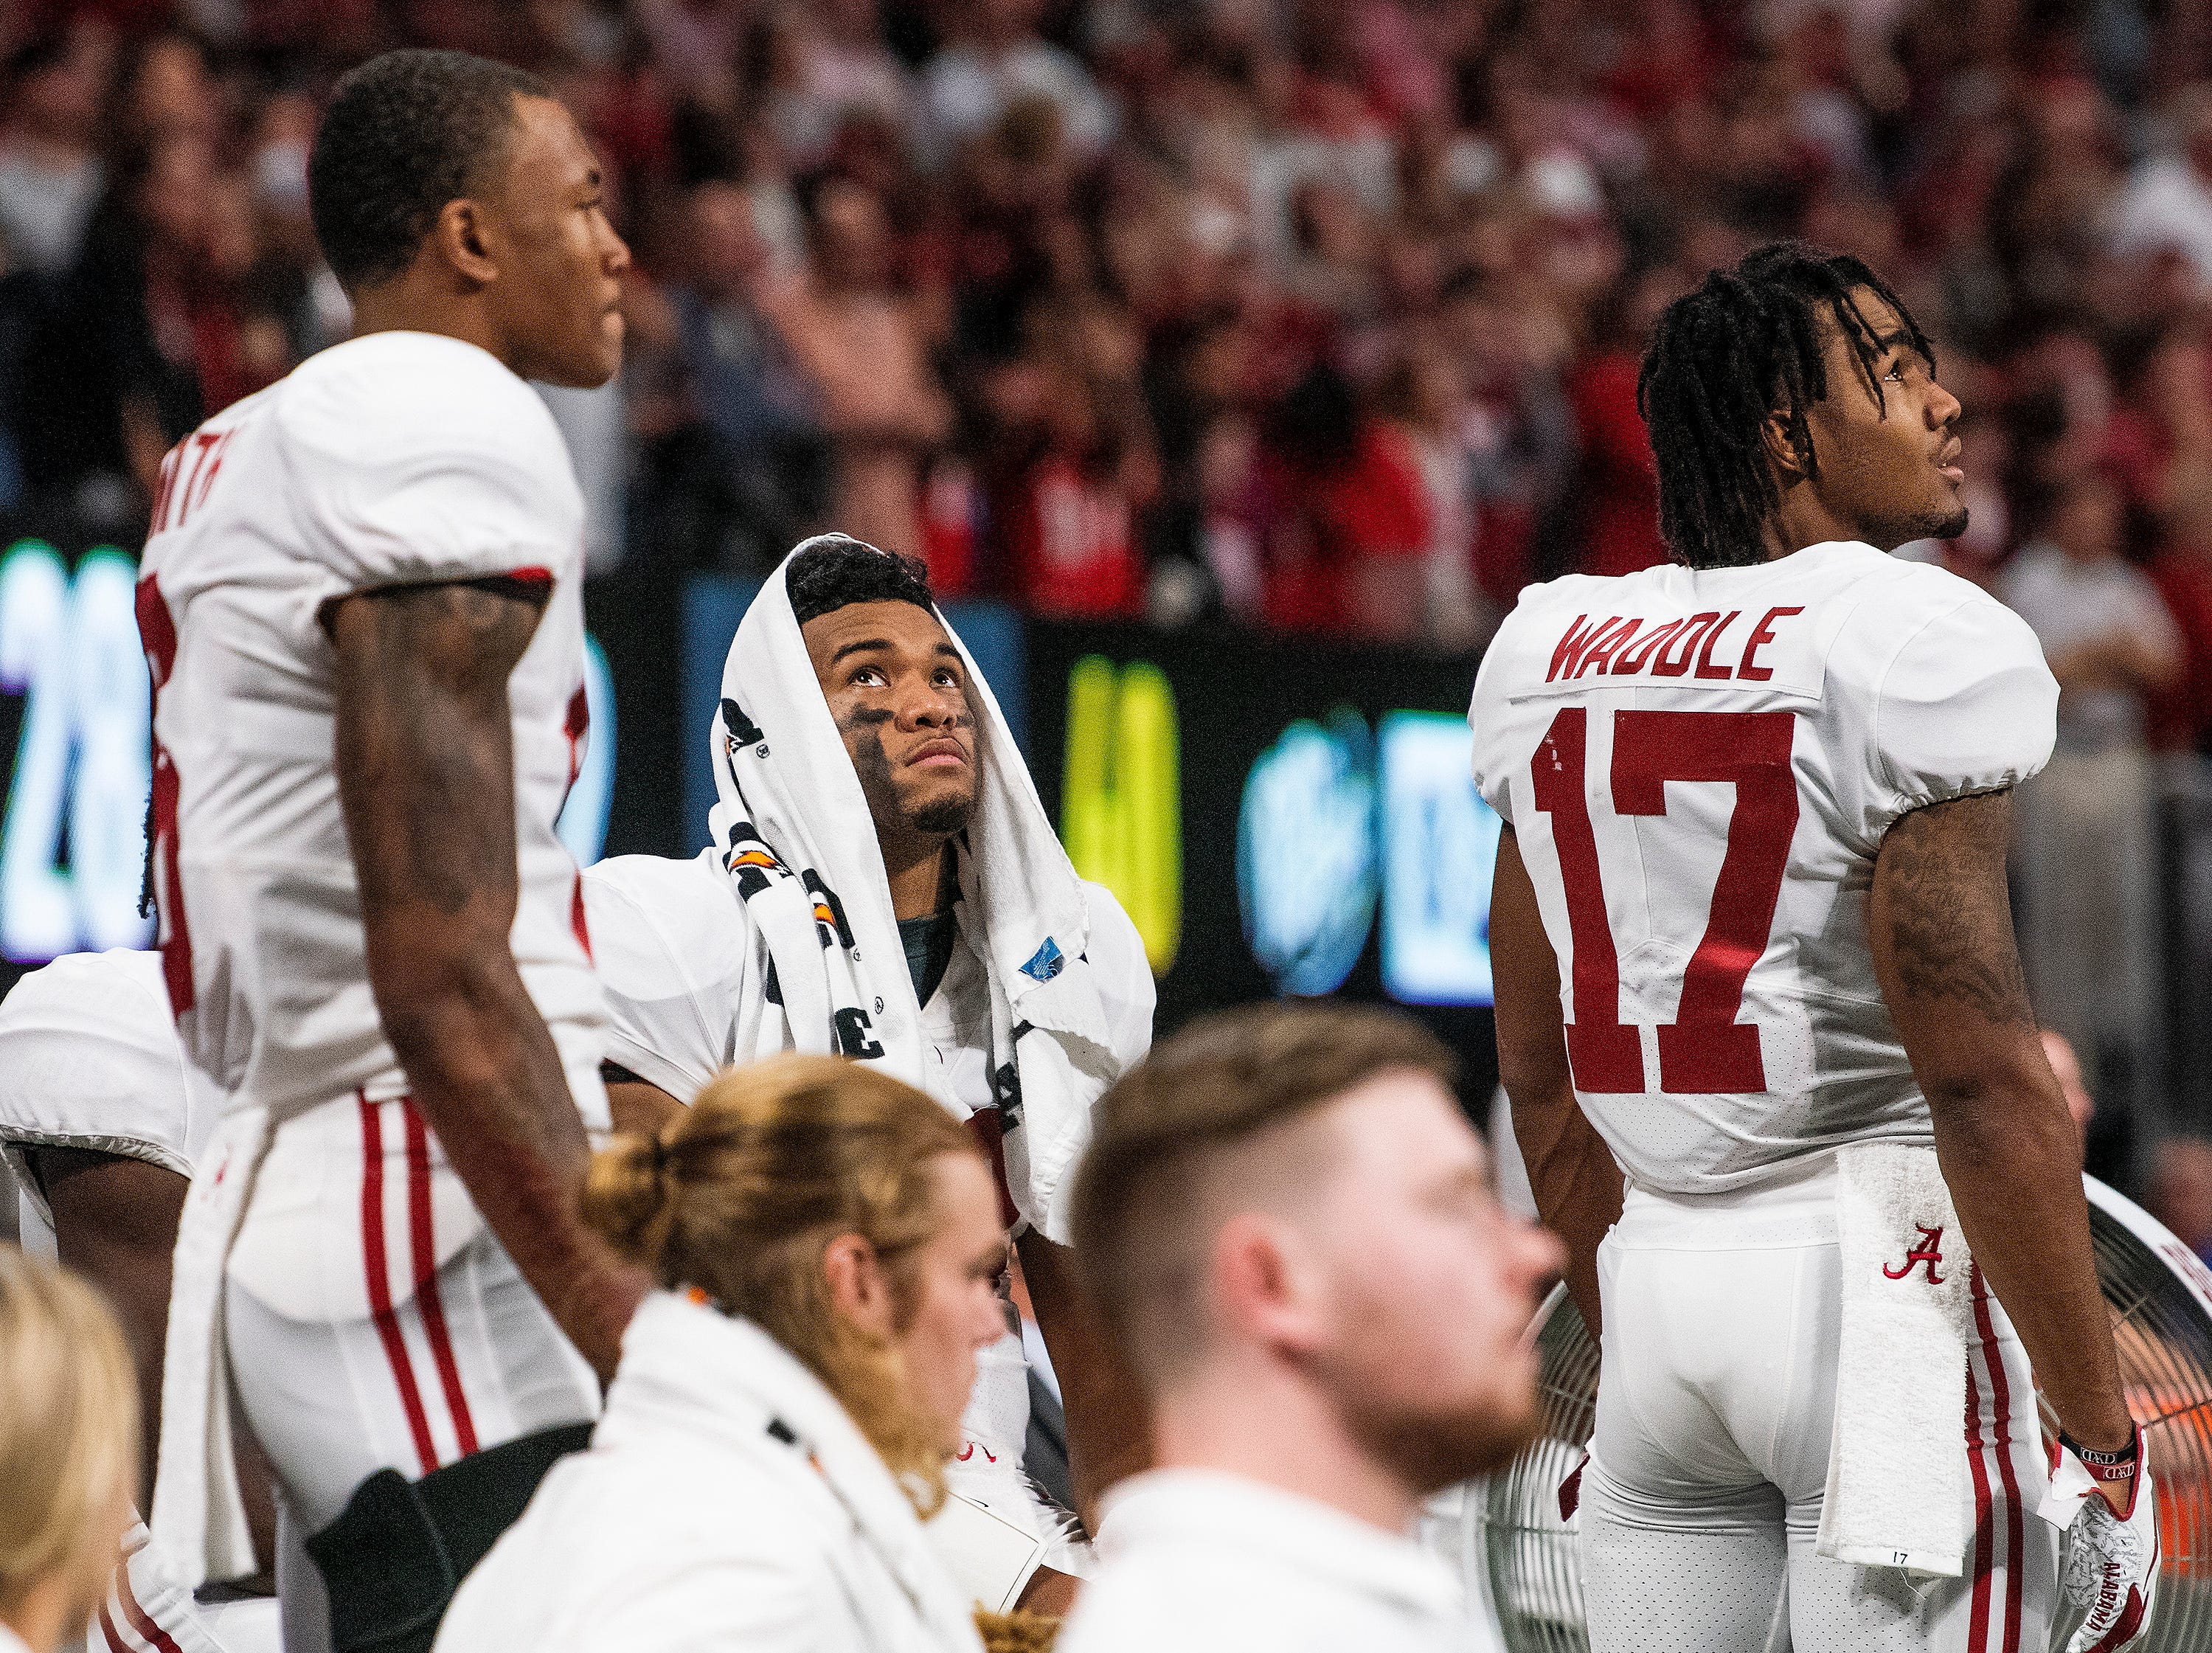 Alabama quarterback Tua Tagovailoa (13), center, watches the final minute of the SEC Championship Game from the bench after being injured at Mercedes Benz Stadium in Atlanta, Ga., on Saturday December 1, 2018.